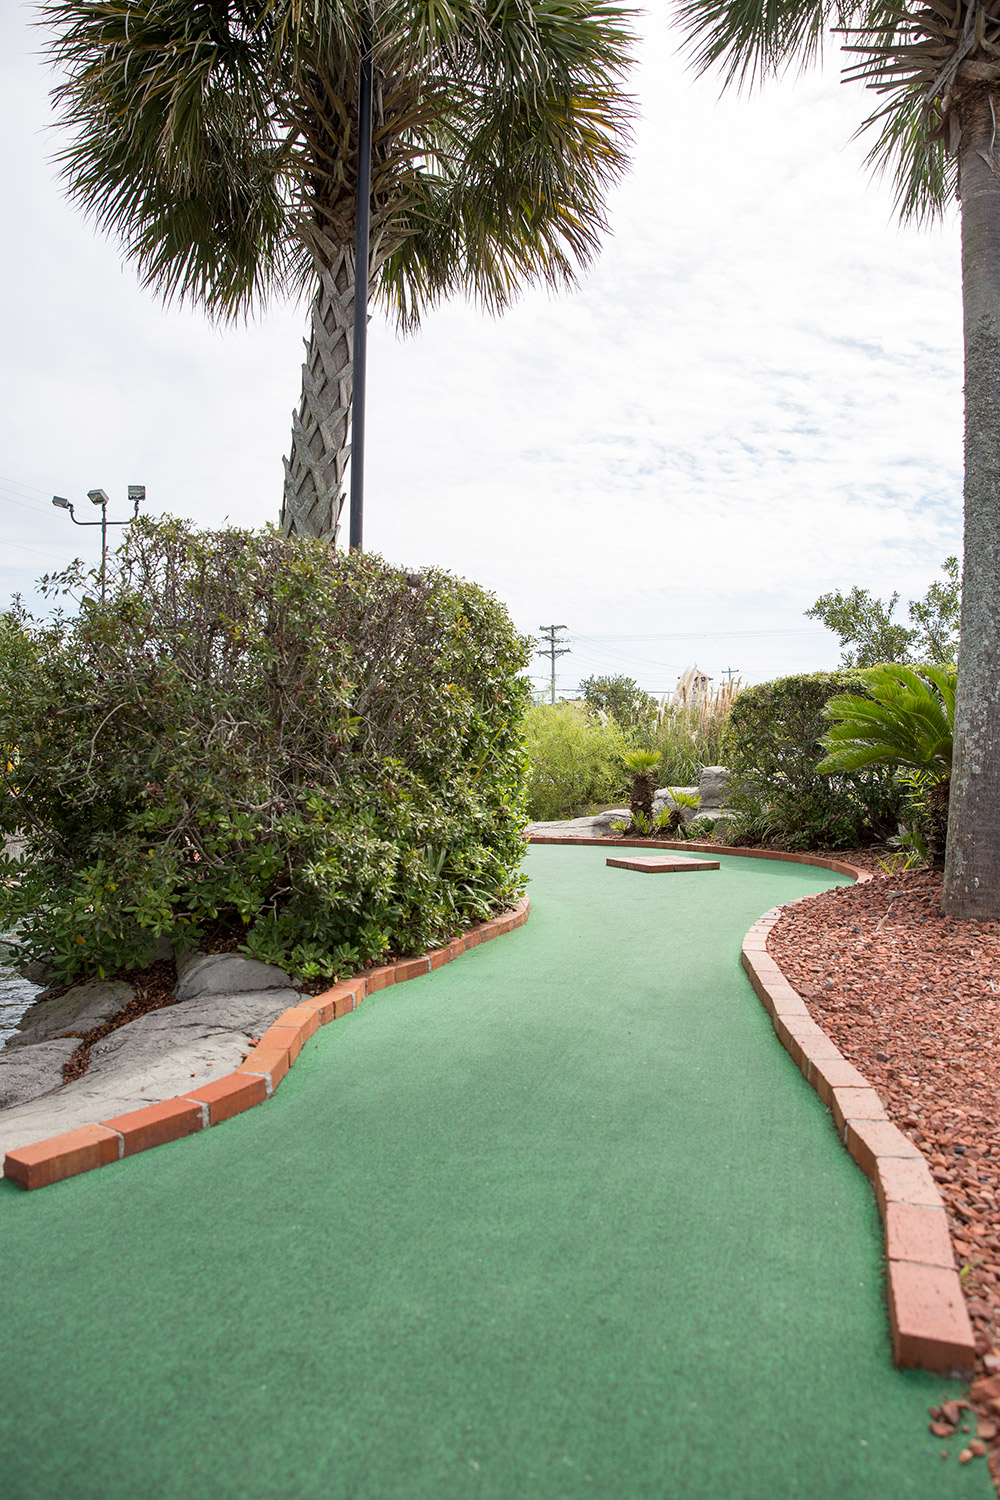 miniature golf in north myrtle beach